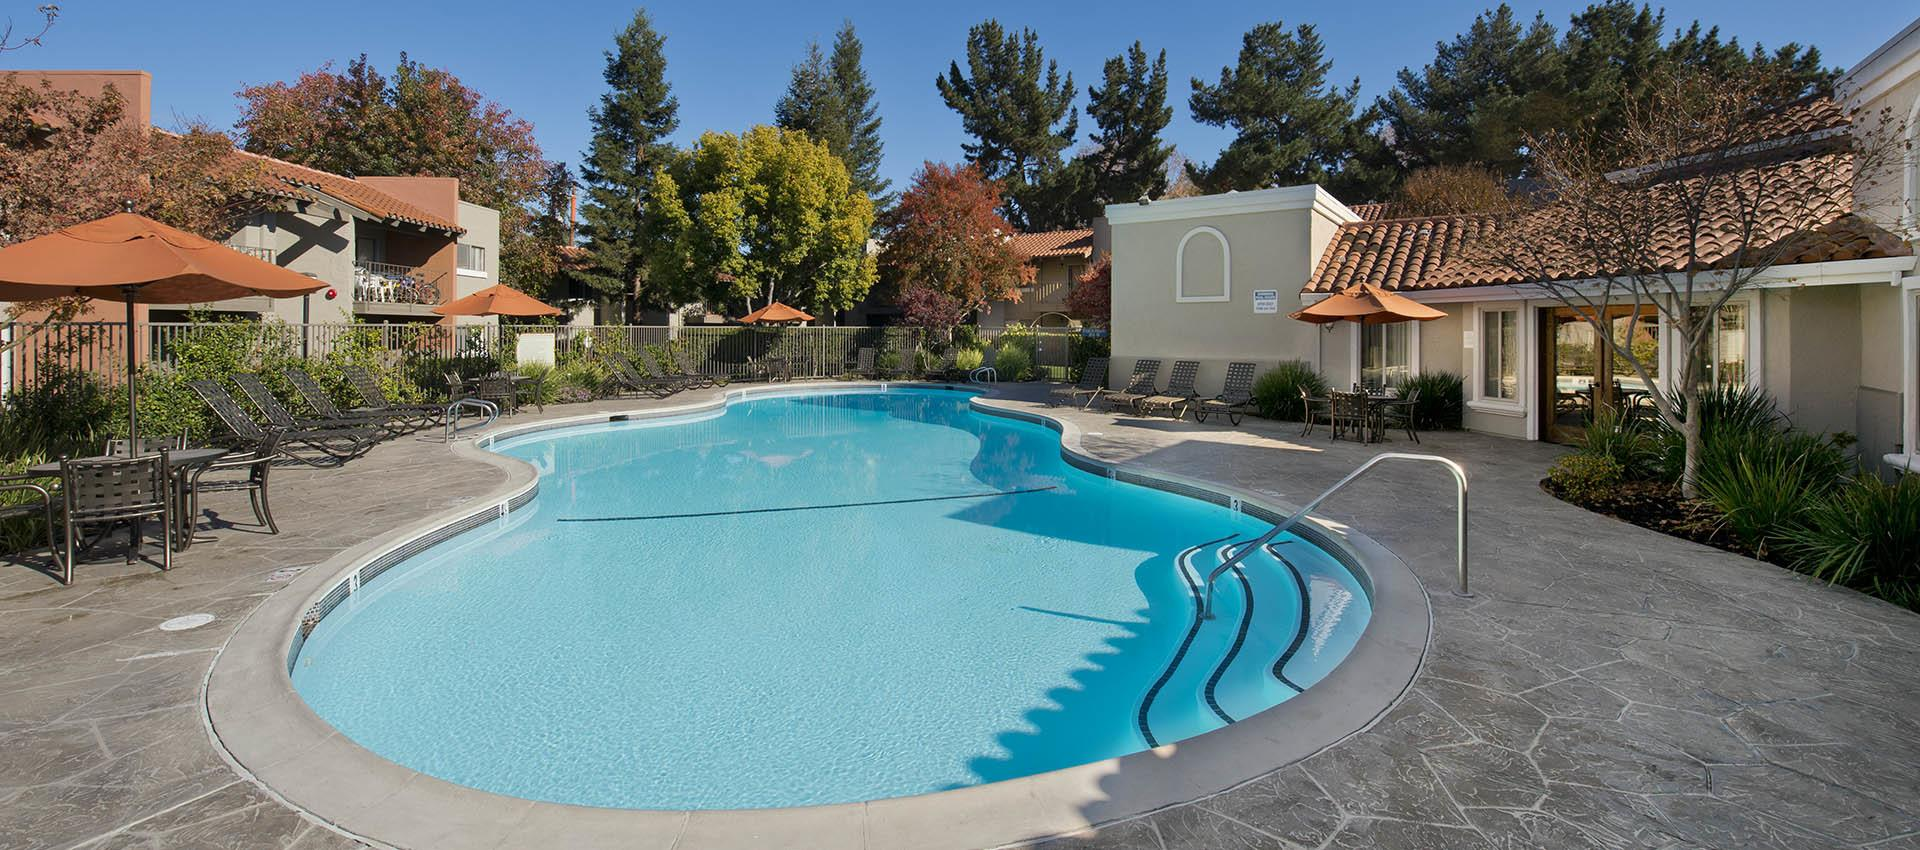 Expansive Pool Deck at La Valencia Apartment Homes in Campbell, CA